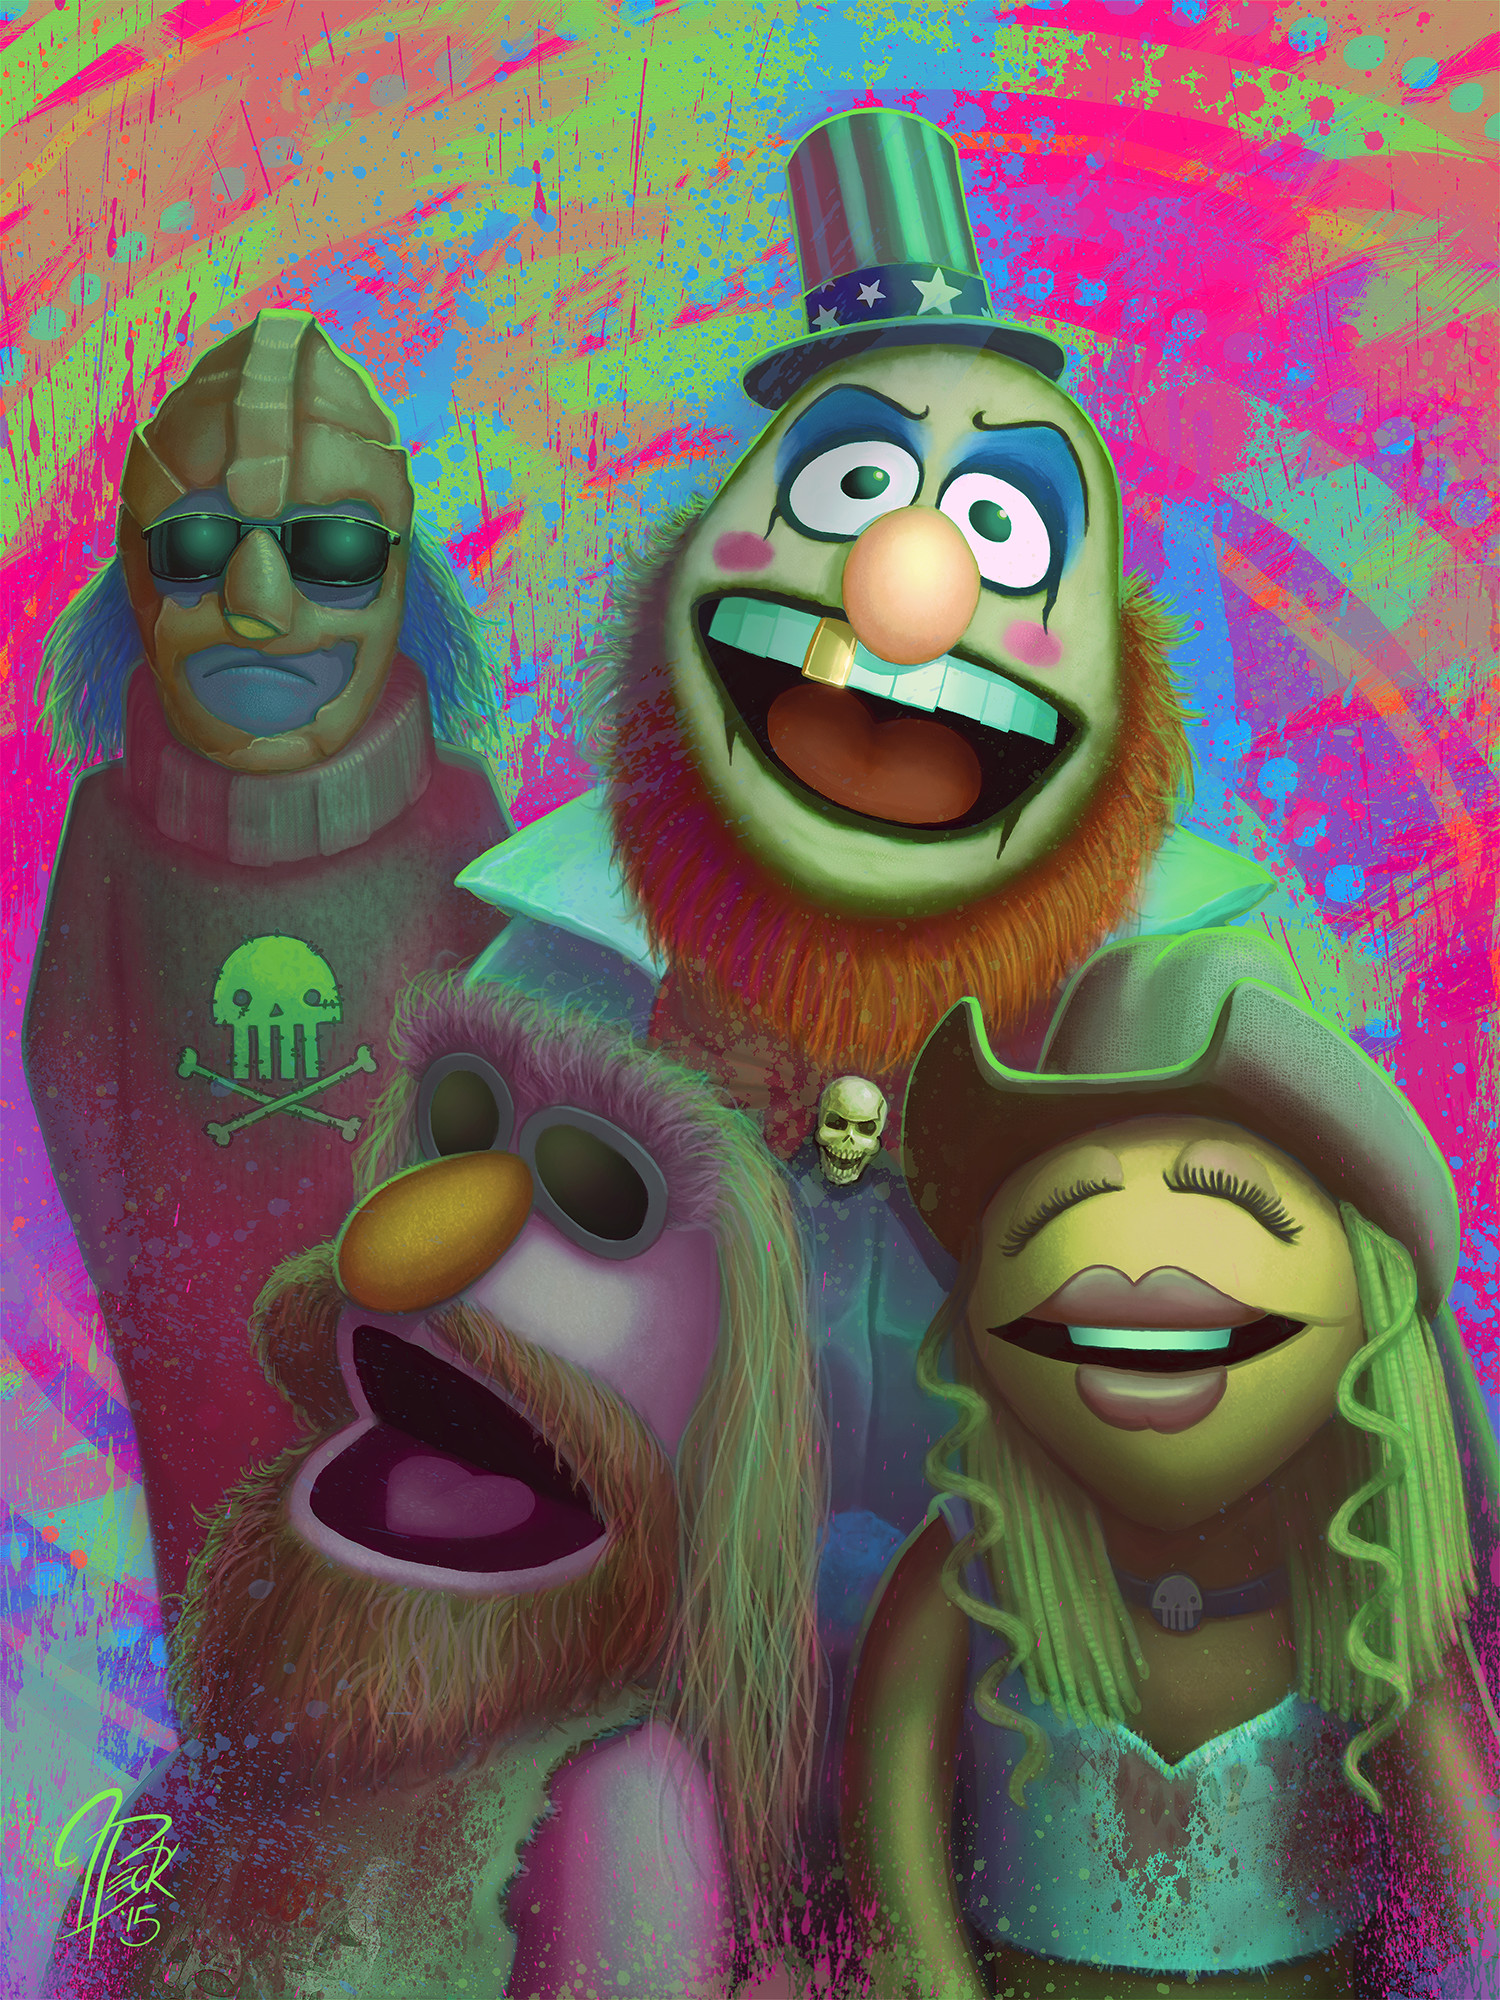 Electric Mayhem as Capt. Spaulding and the Firefly Family